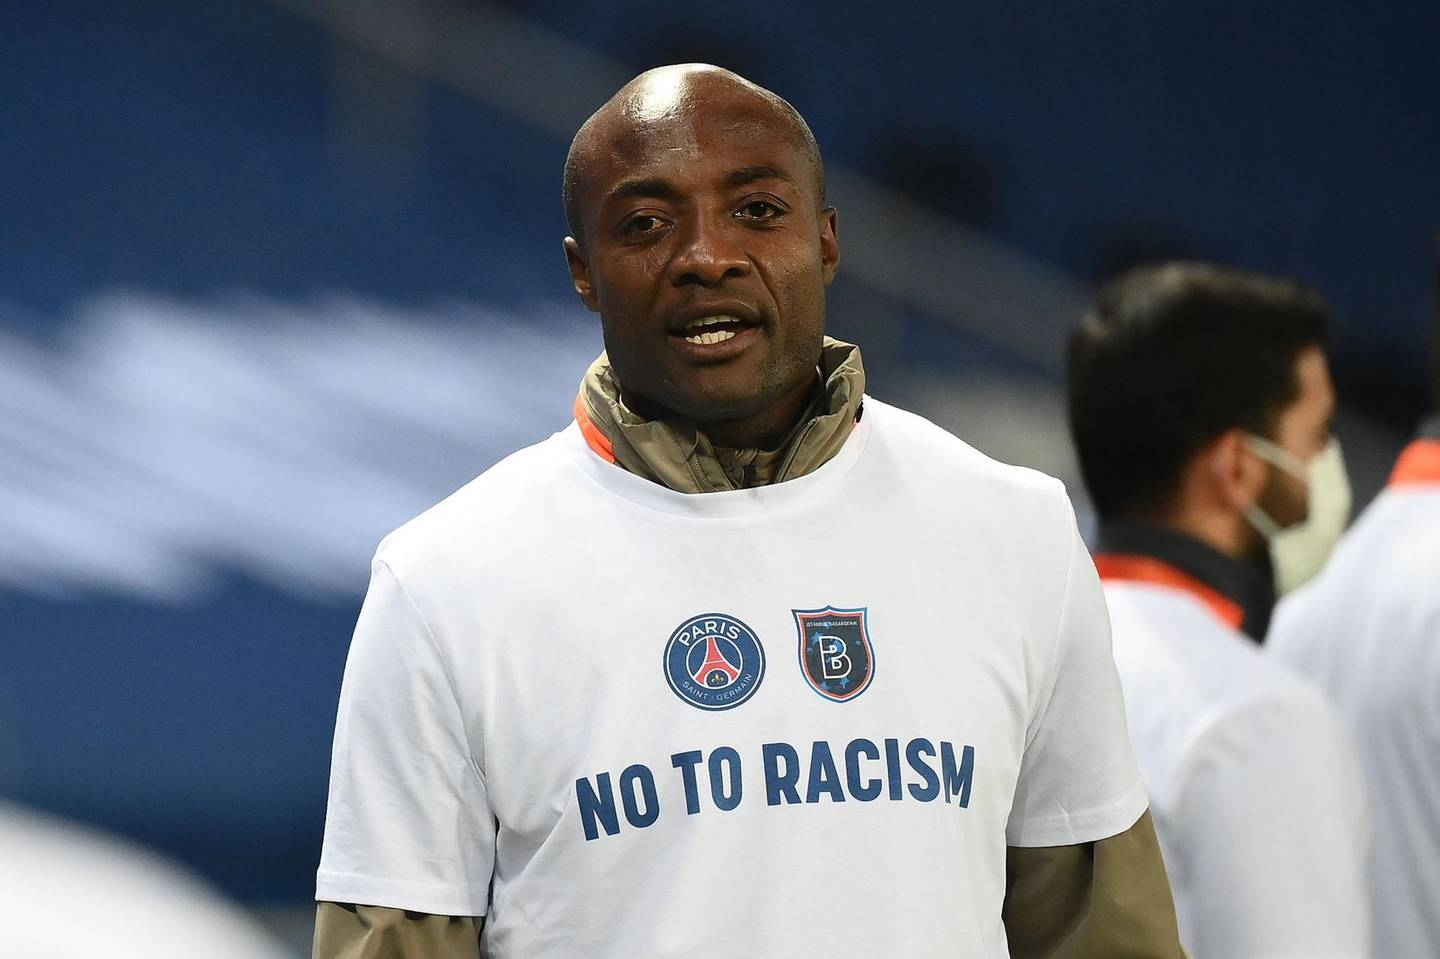 """TOPSHOT - Istanbul Basaksehir's Cameroonian assistant coach Pierre Webo, wearing a tshirt reading """"No to racism"""", looks on during warm-up before the UEFA Champions League group H football match between Paris Saint-Germain (PSG) and Istanbul Basaksehir FK at the Parc des Princes stadium in Paris, on December 9, 2020. The group game in Paris, which was goalless at the time, was suspended when both teams left the pitch on December 8, 2020 after a touchline argument erupted when the Romanian fourth official, Sebastian Coltescu, appeared to describe Basaksehir assistant coach Pierre Webo, a former Cameroon international player, as """"black"""", or """"negru"""" in Romanian and will resume on December 9 where it left off, in the 14th minute, with a different set of officials.  / AFP / FRANCK FIFE"""